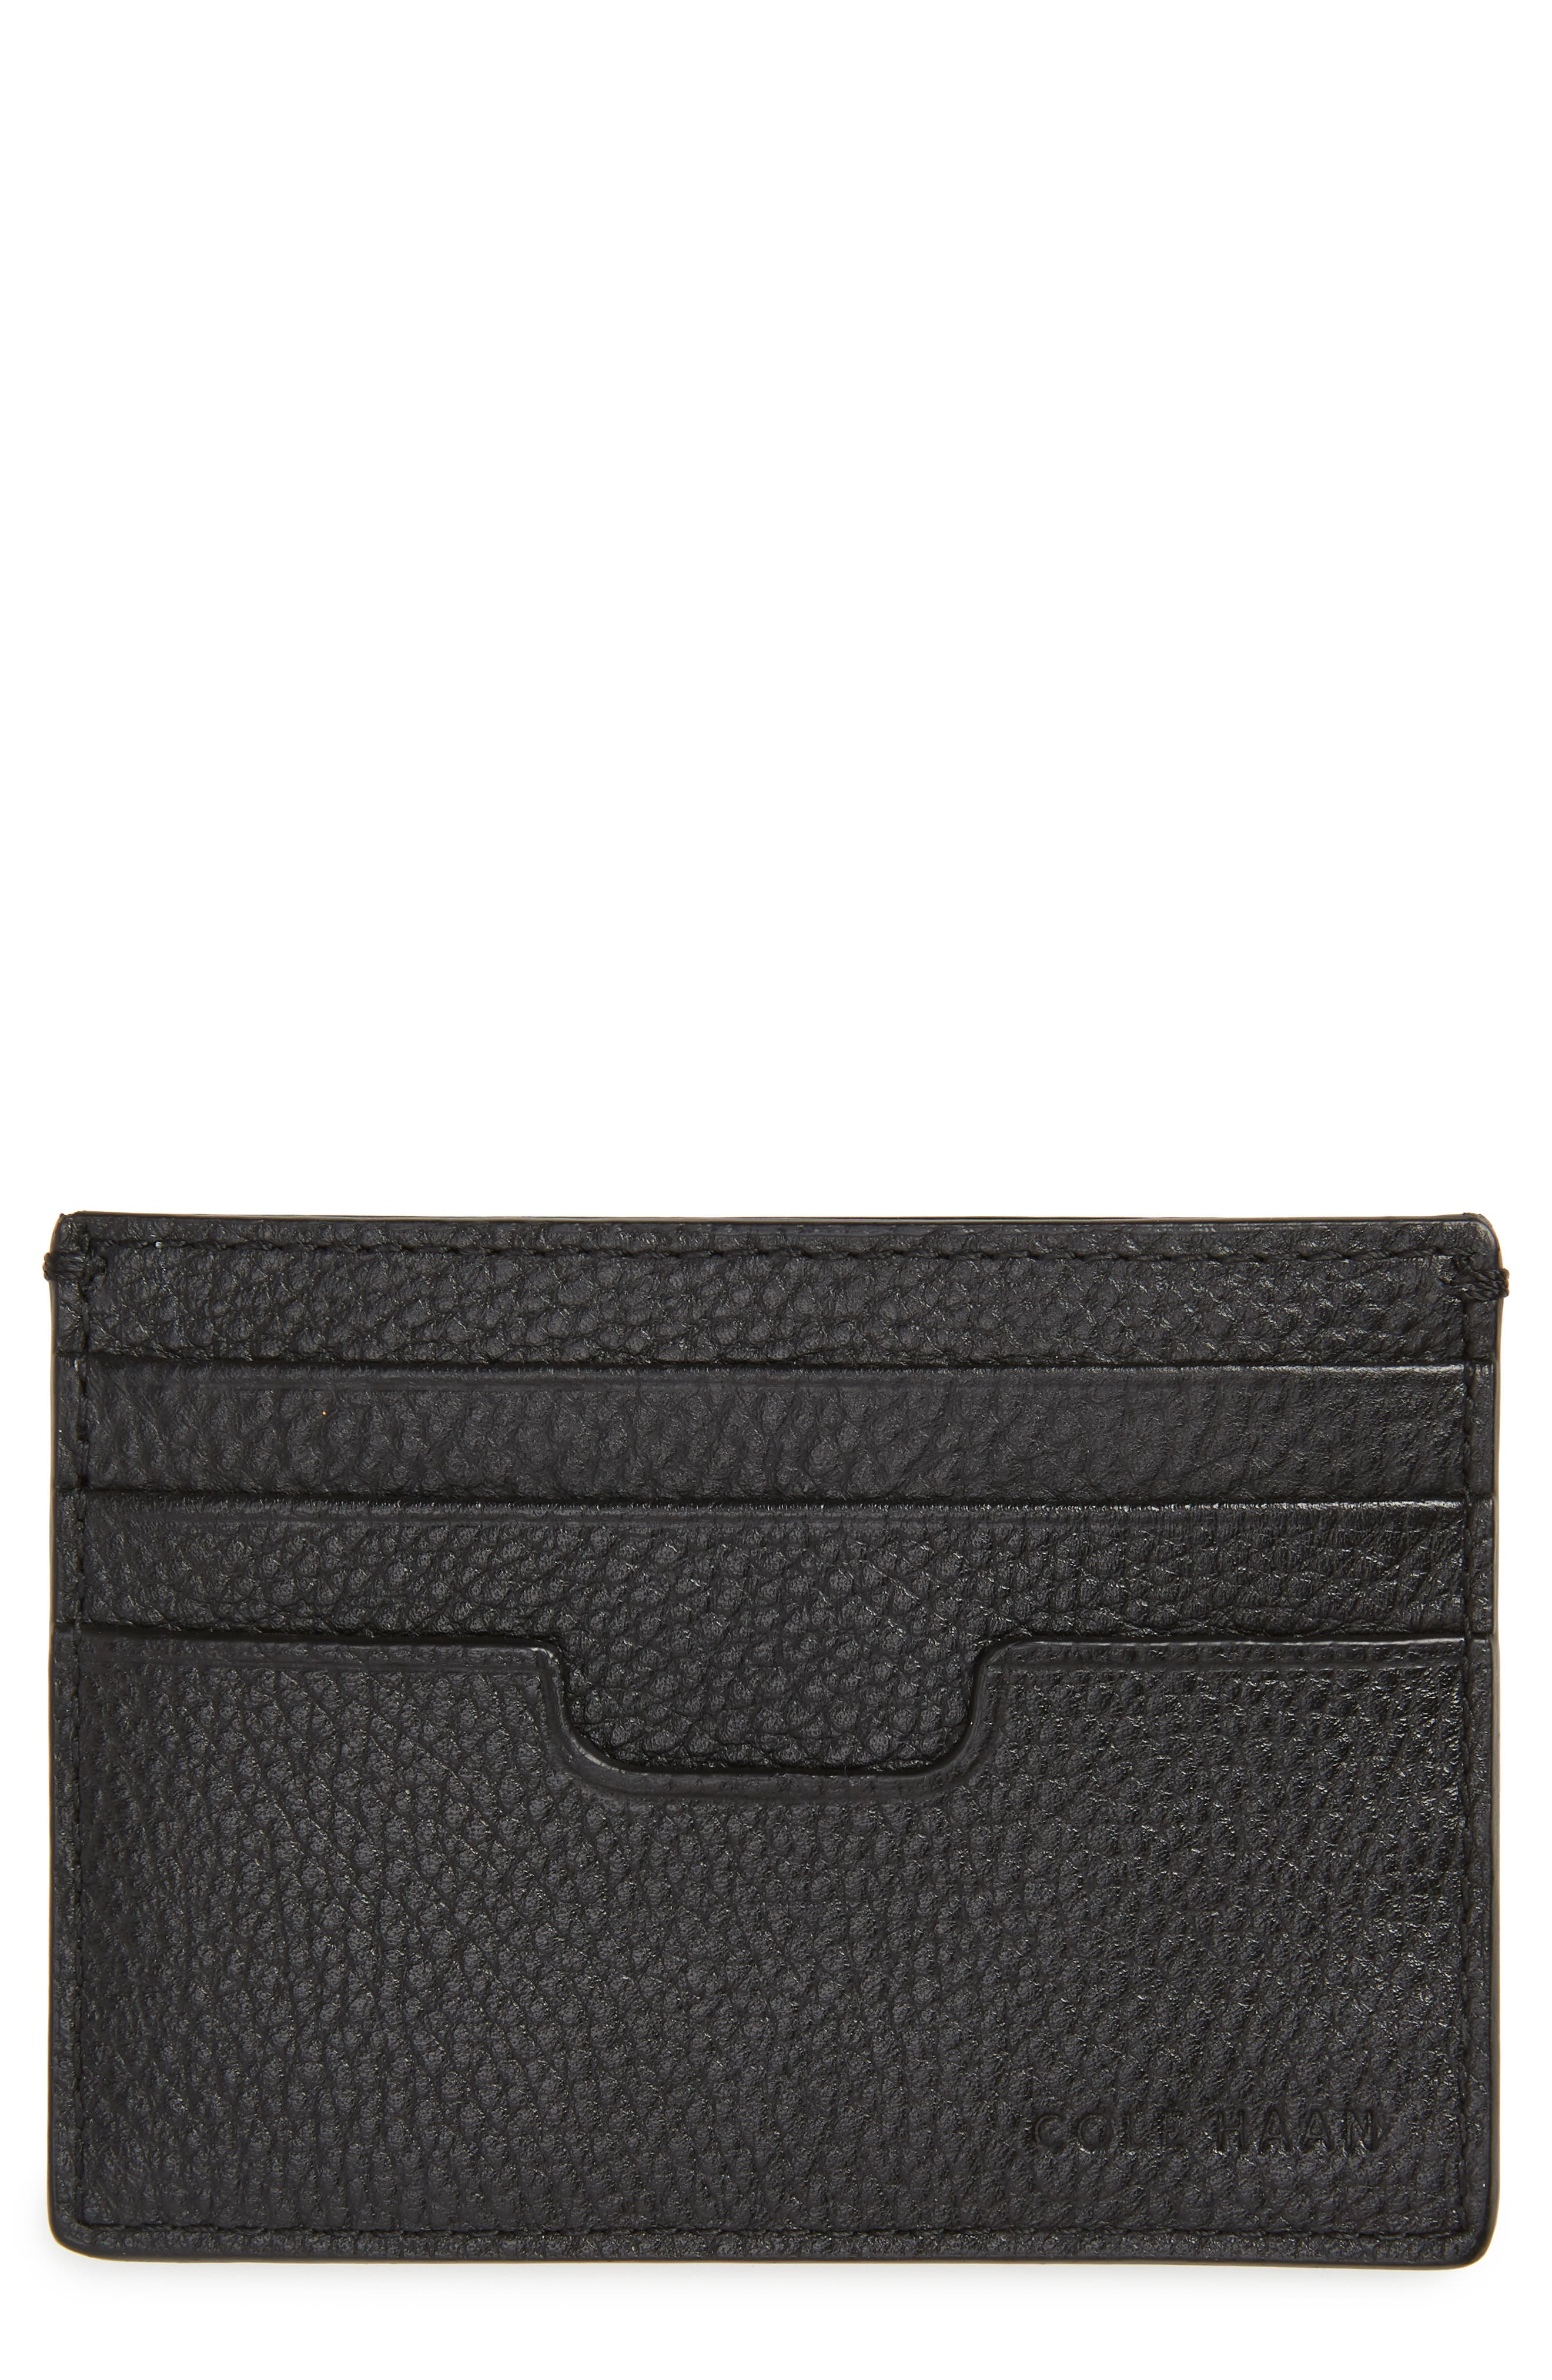 Colby Leather Card Case,                             Main thumbnail 1, color,                             BLACK